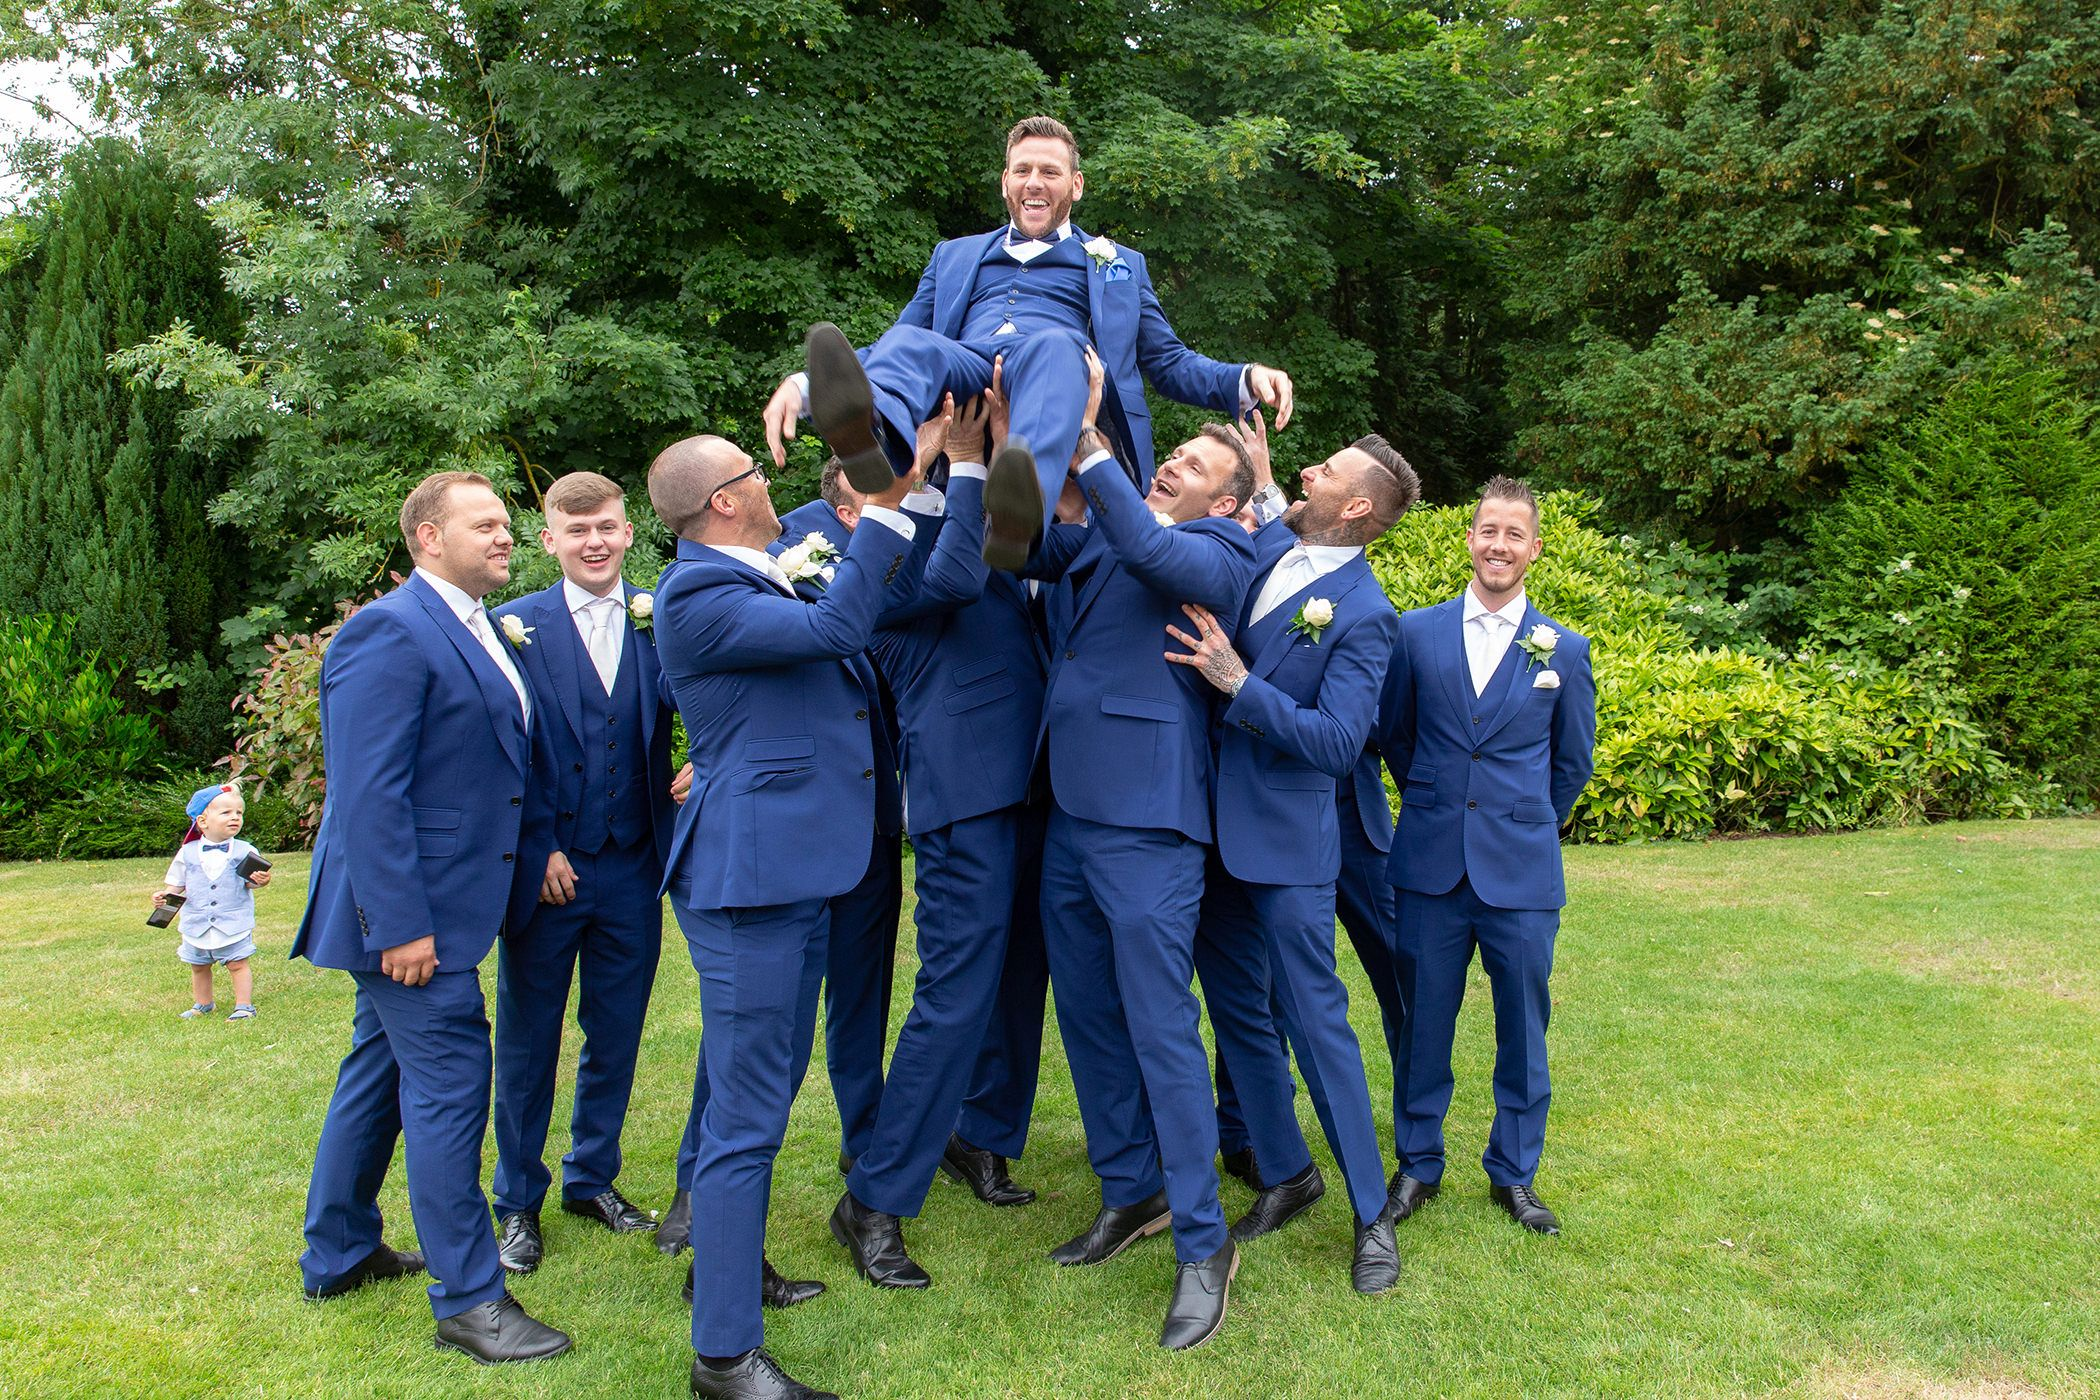 the groom gets thrown in the air